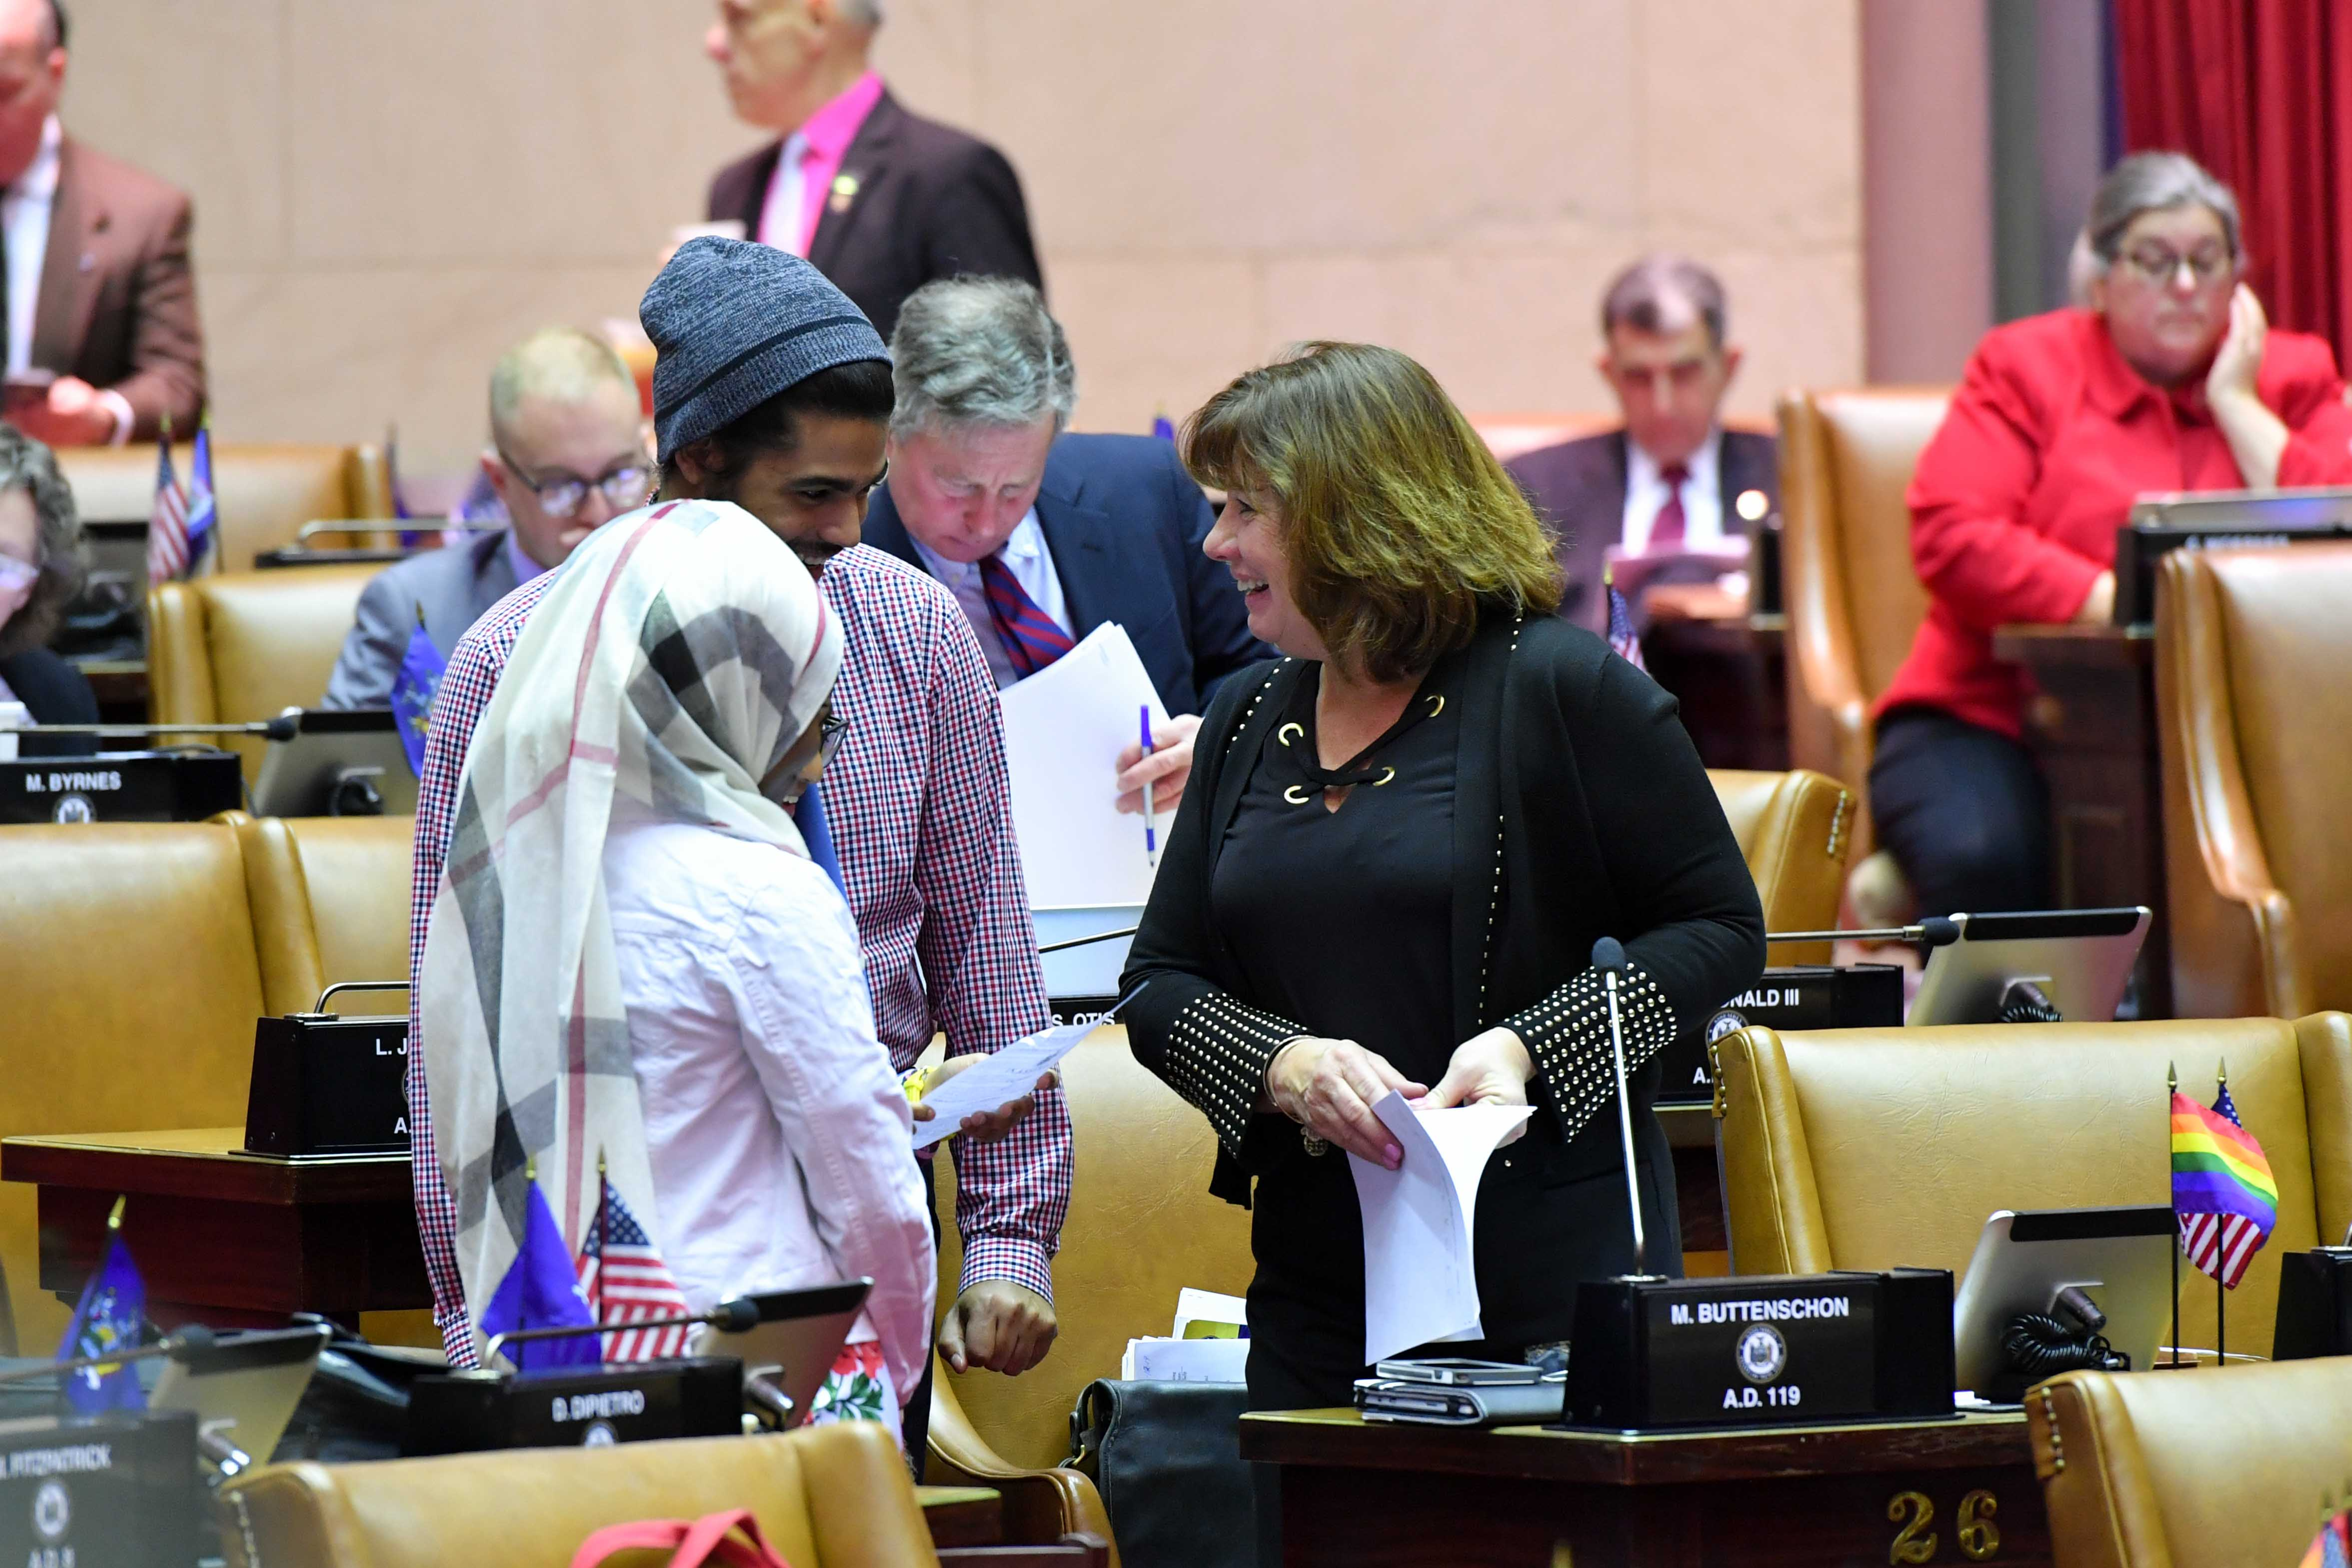 Assemblywoman Buttenschon on the floor of the Assembly with students from Mohawk Valley Community College C-Step Program.